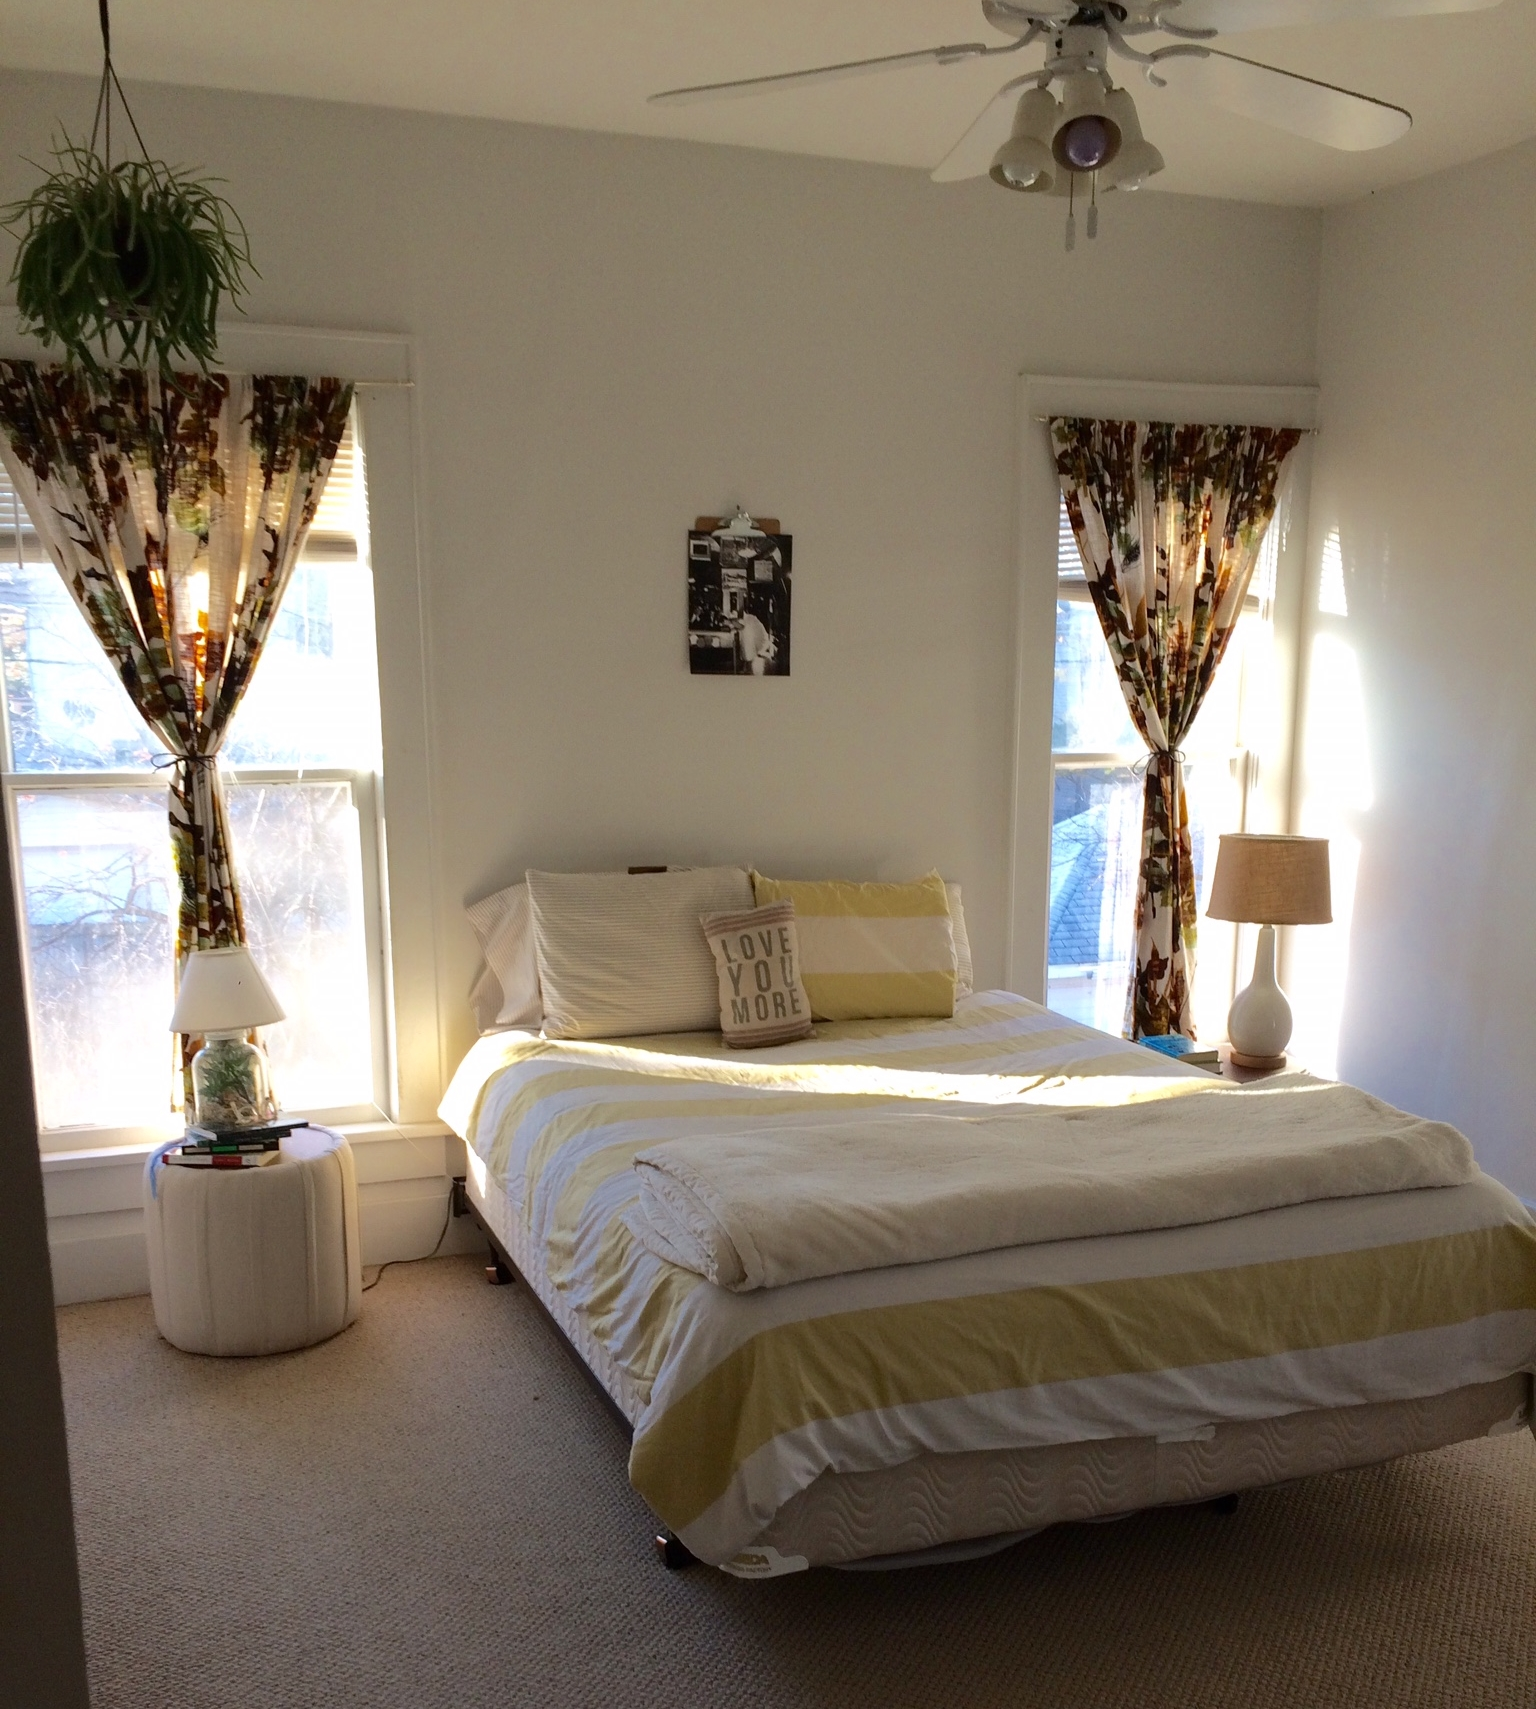 We loved 1919 Prospect Street, especially the light in the bedroom.